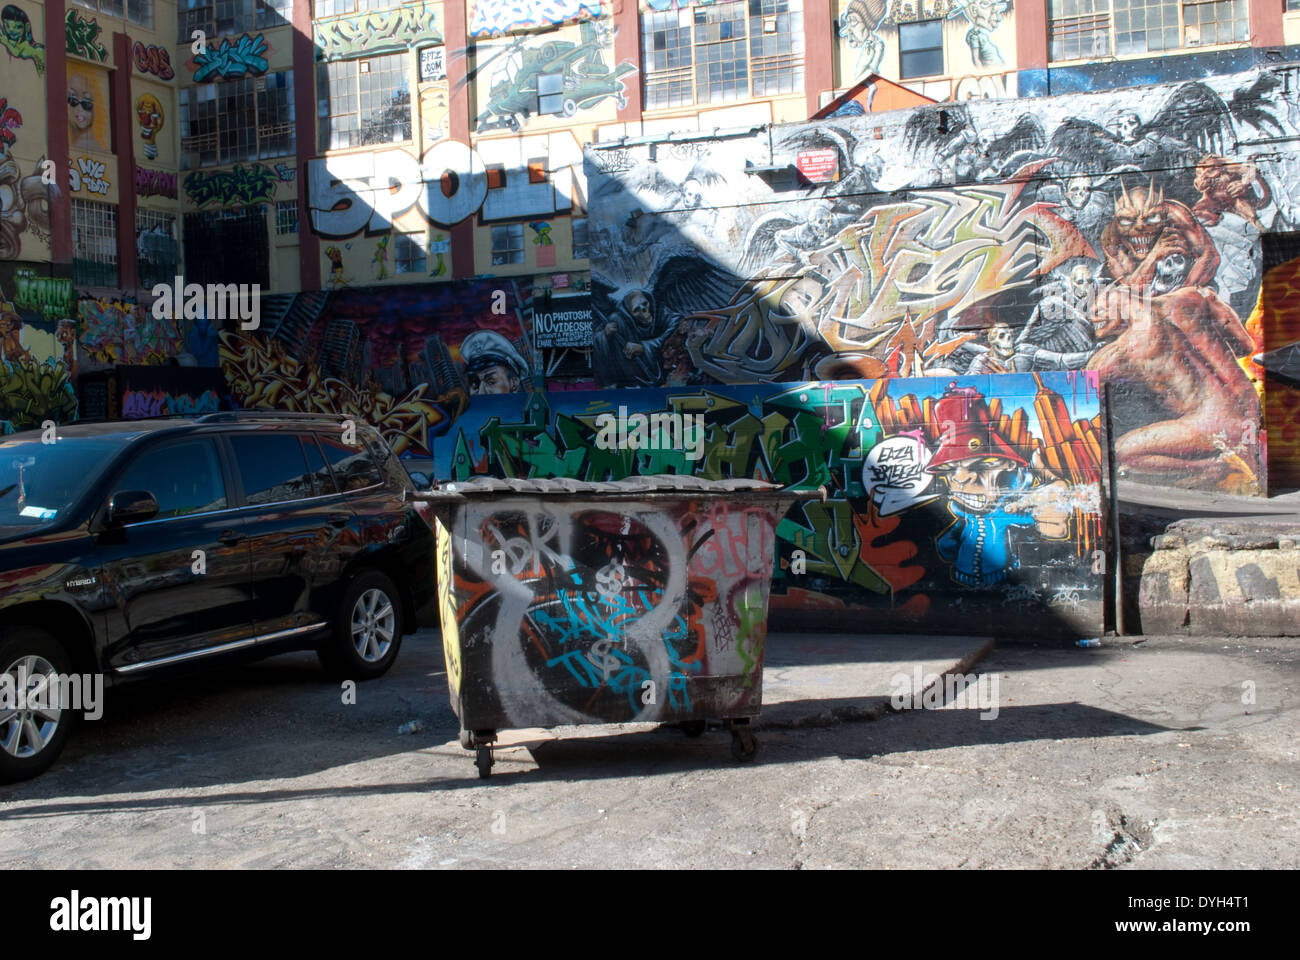 Graffiti - Stock Image